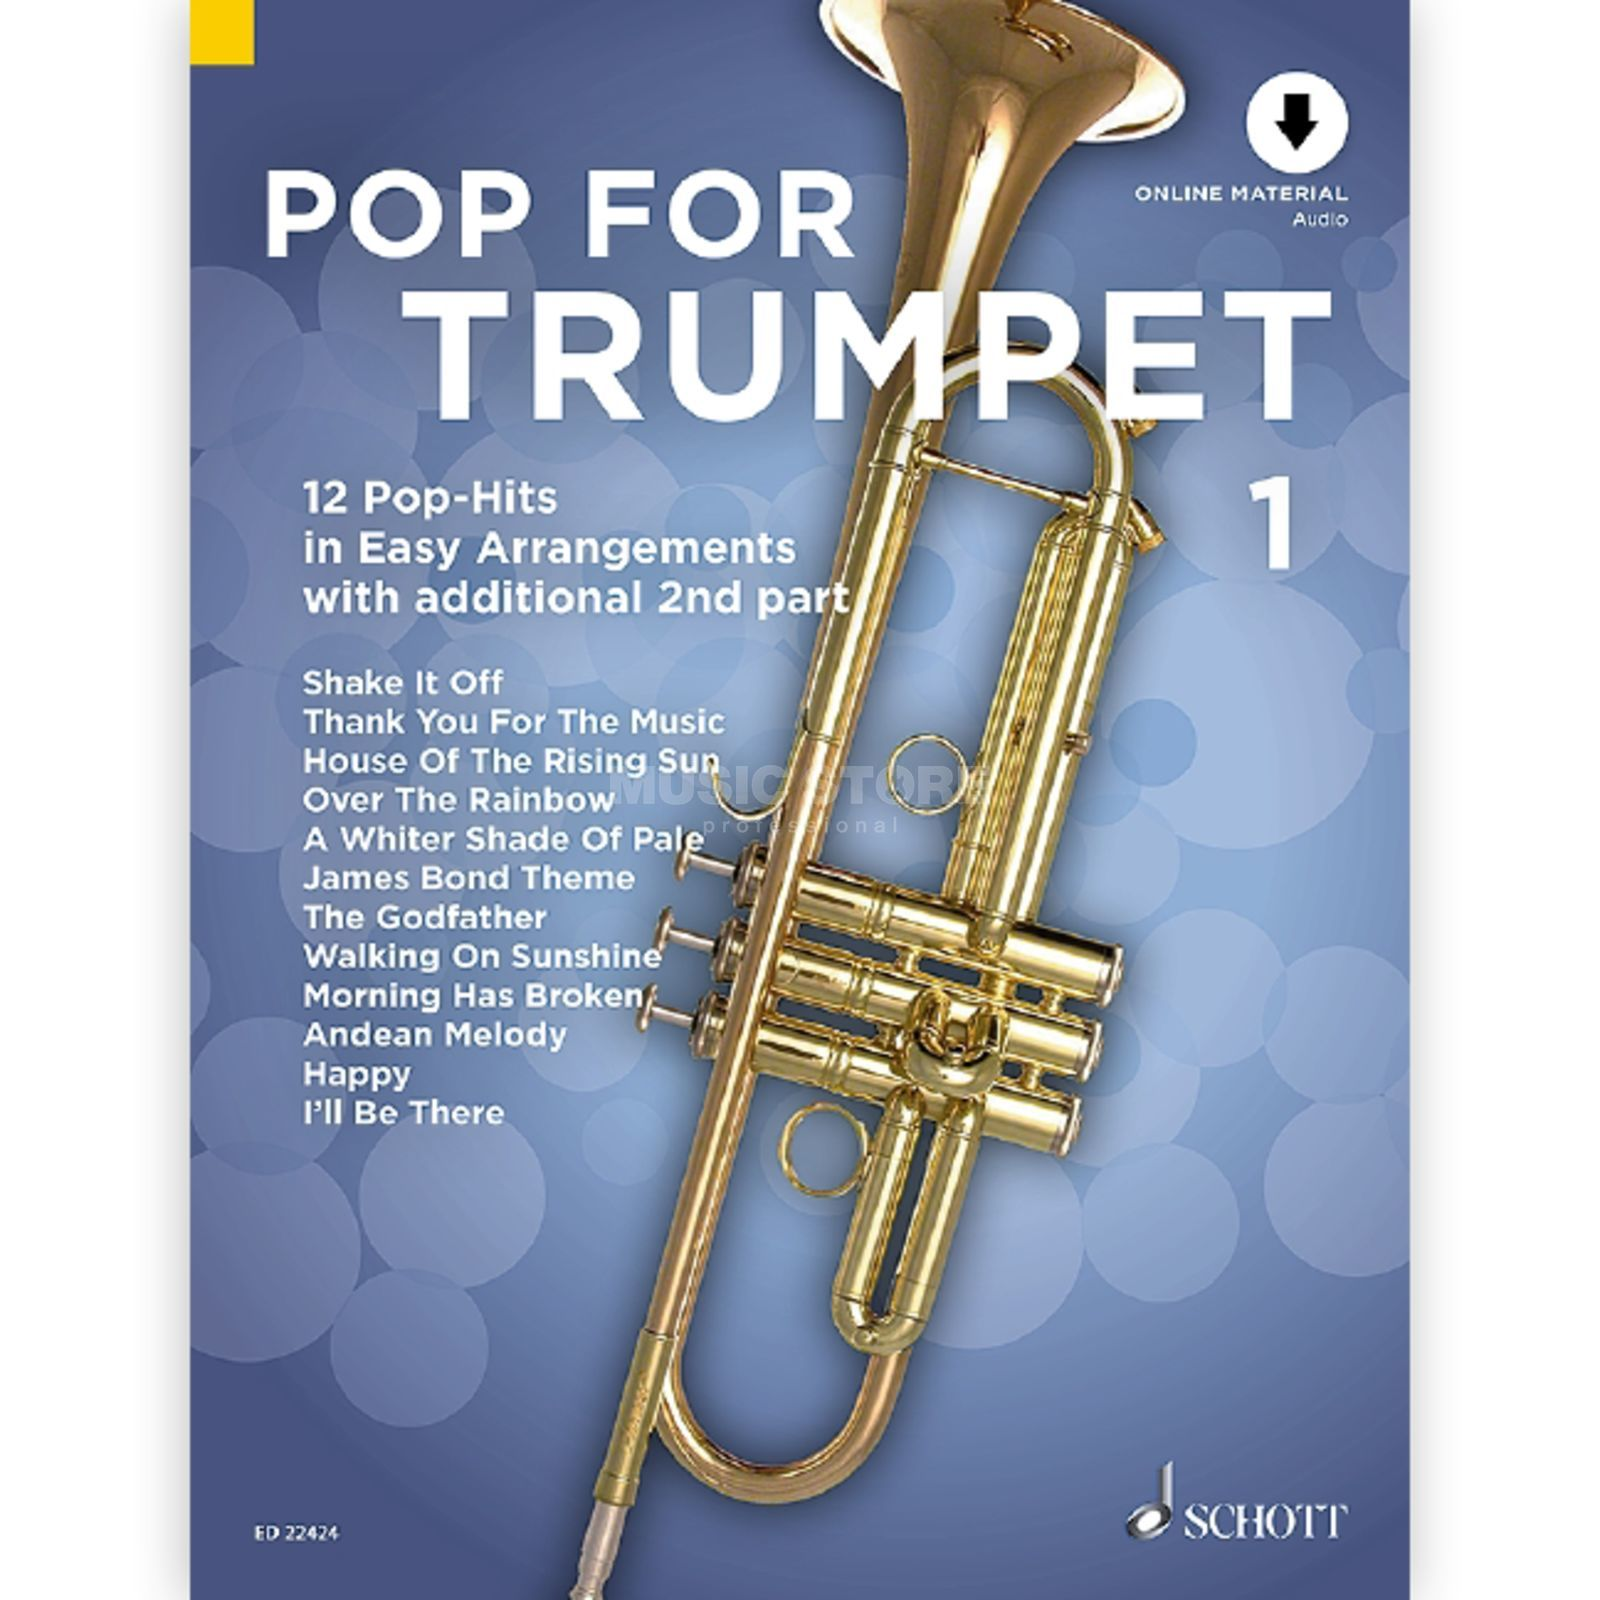 Schott Music Pop For Trumpet 1 Product Image